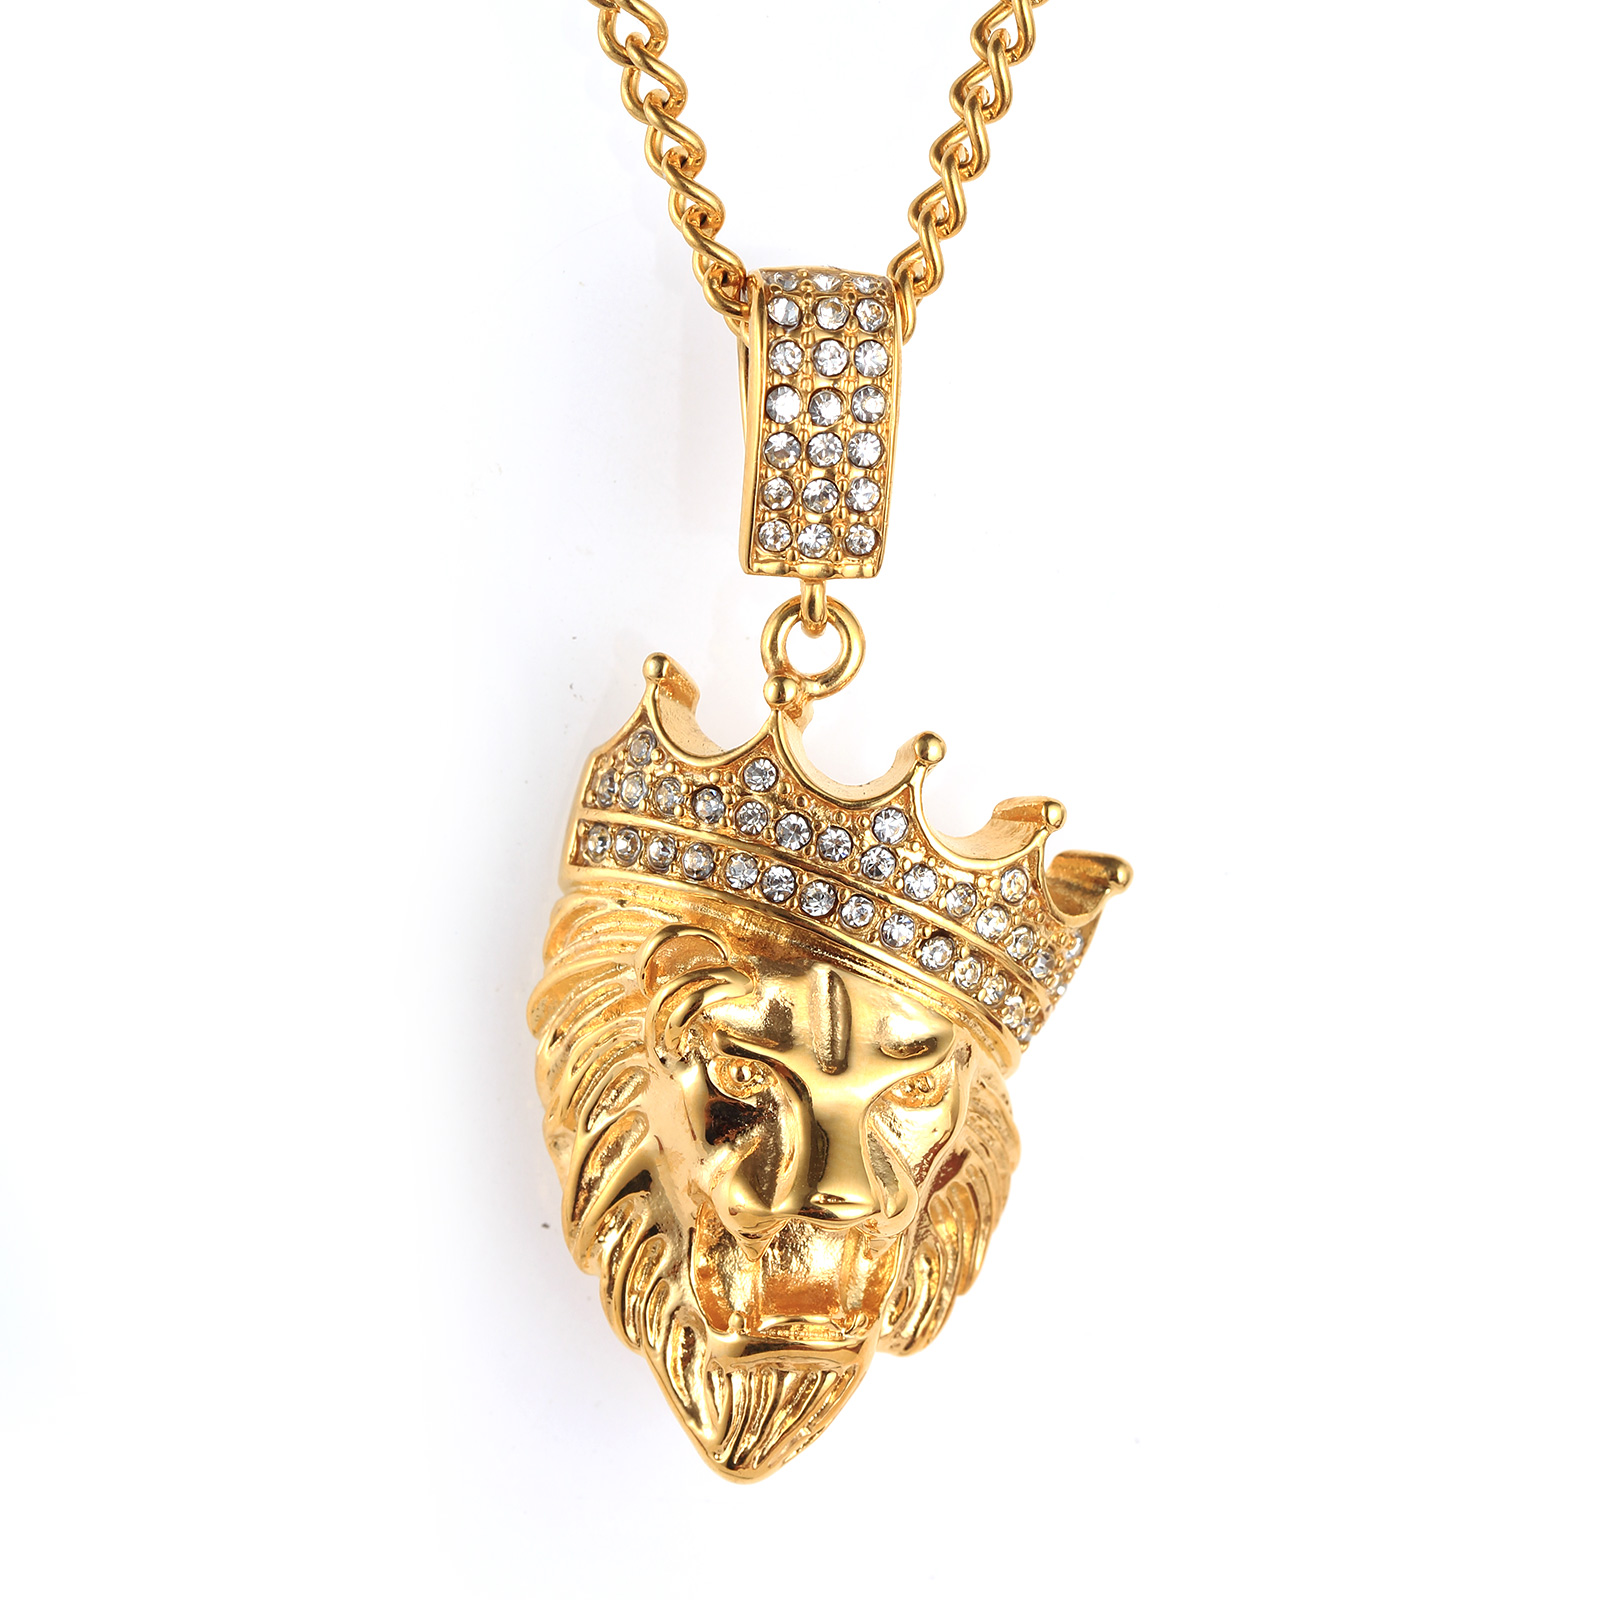 lion item plated fashion with jewelry head for stainless s necklaces steel in from free men color luxusteel necklace pendant chain gold